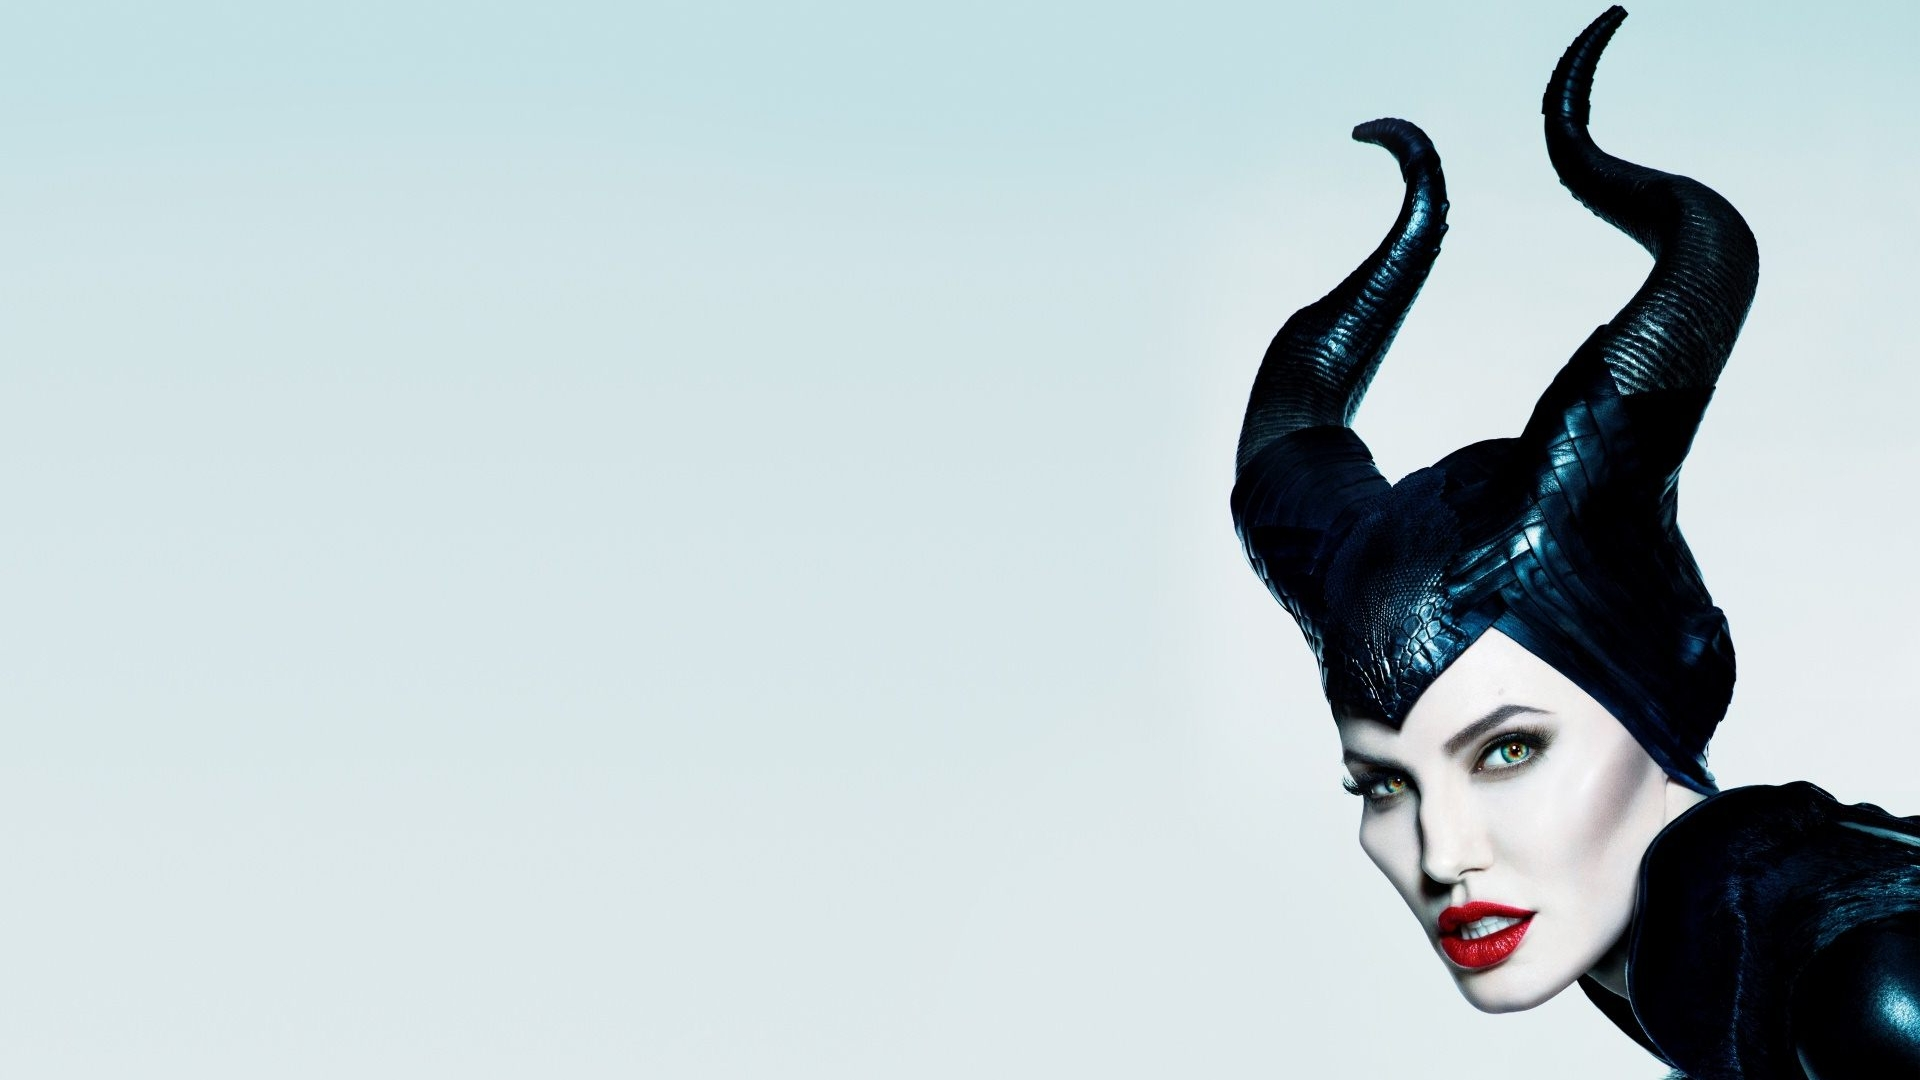 Maleficent Hd Wallpaper Background Image 1920x1080 Id